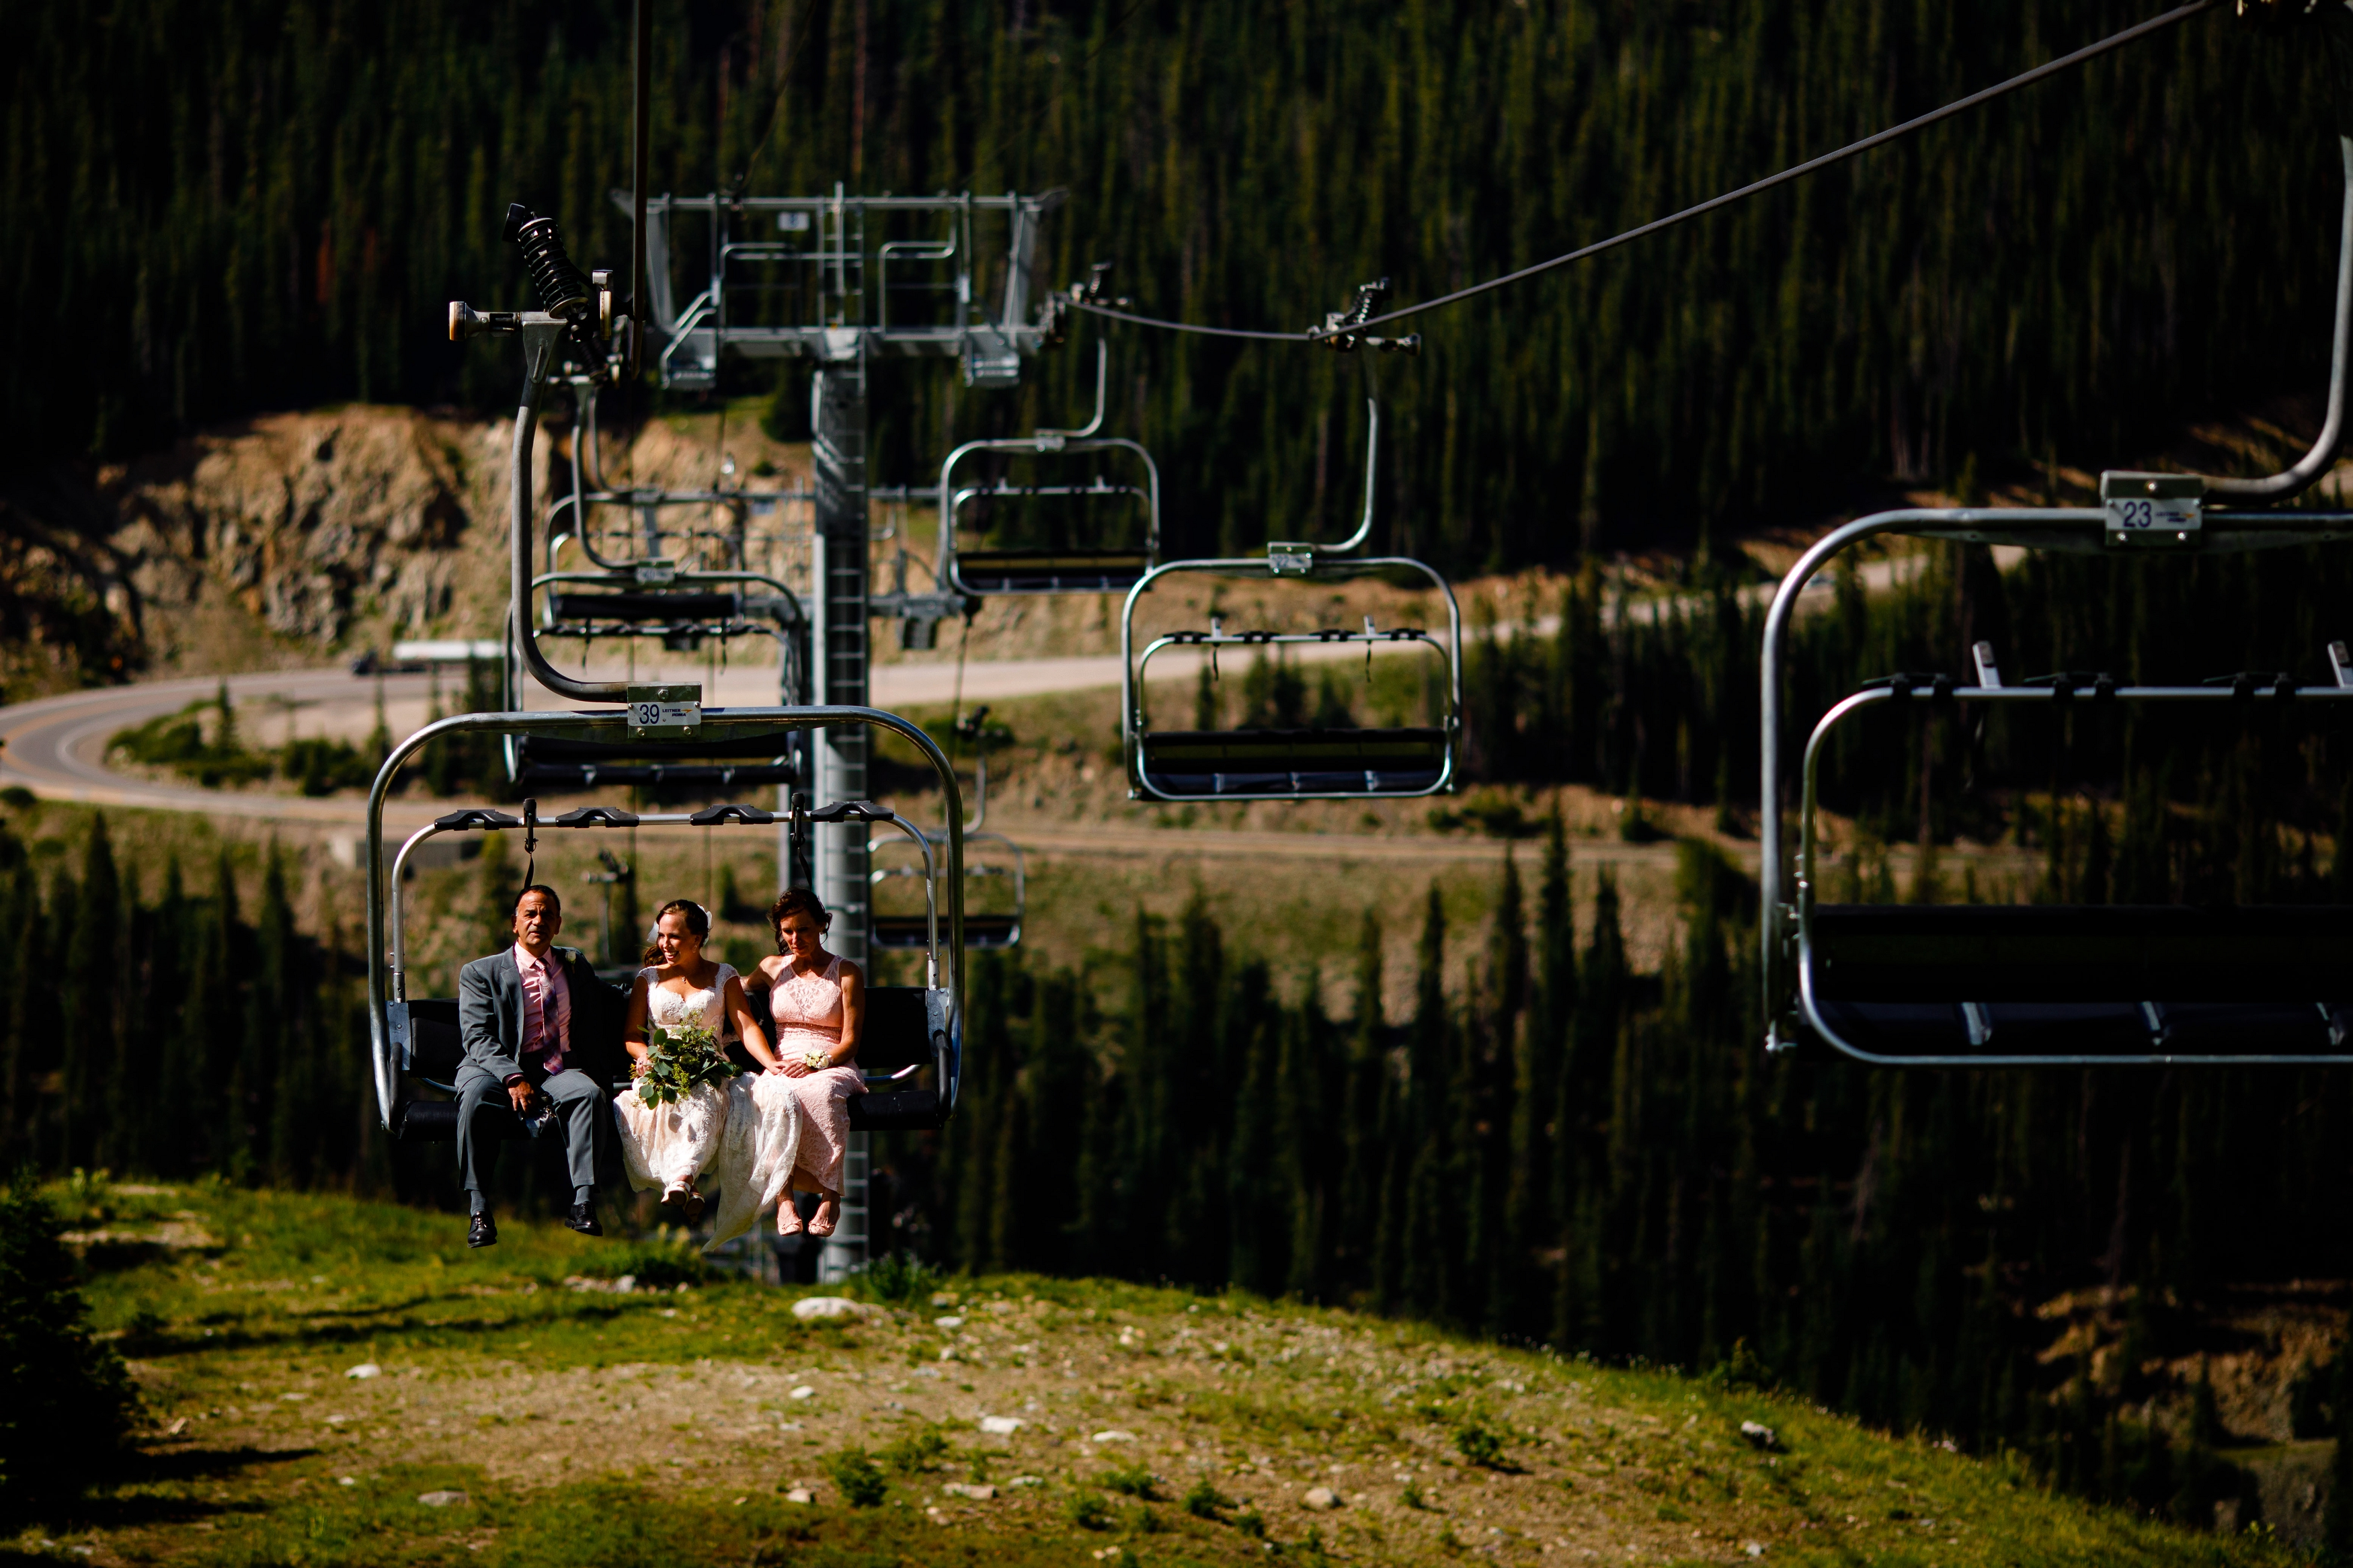 Bride riding the chairlift with her parents before walking down the isle to get married.